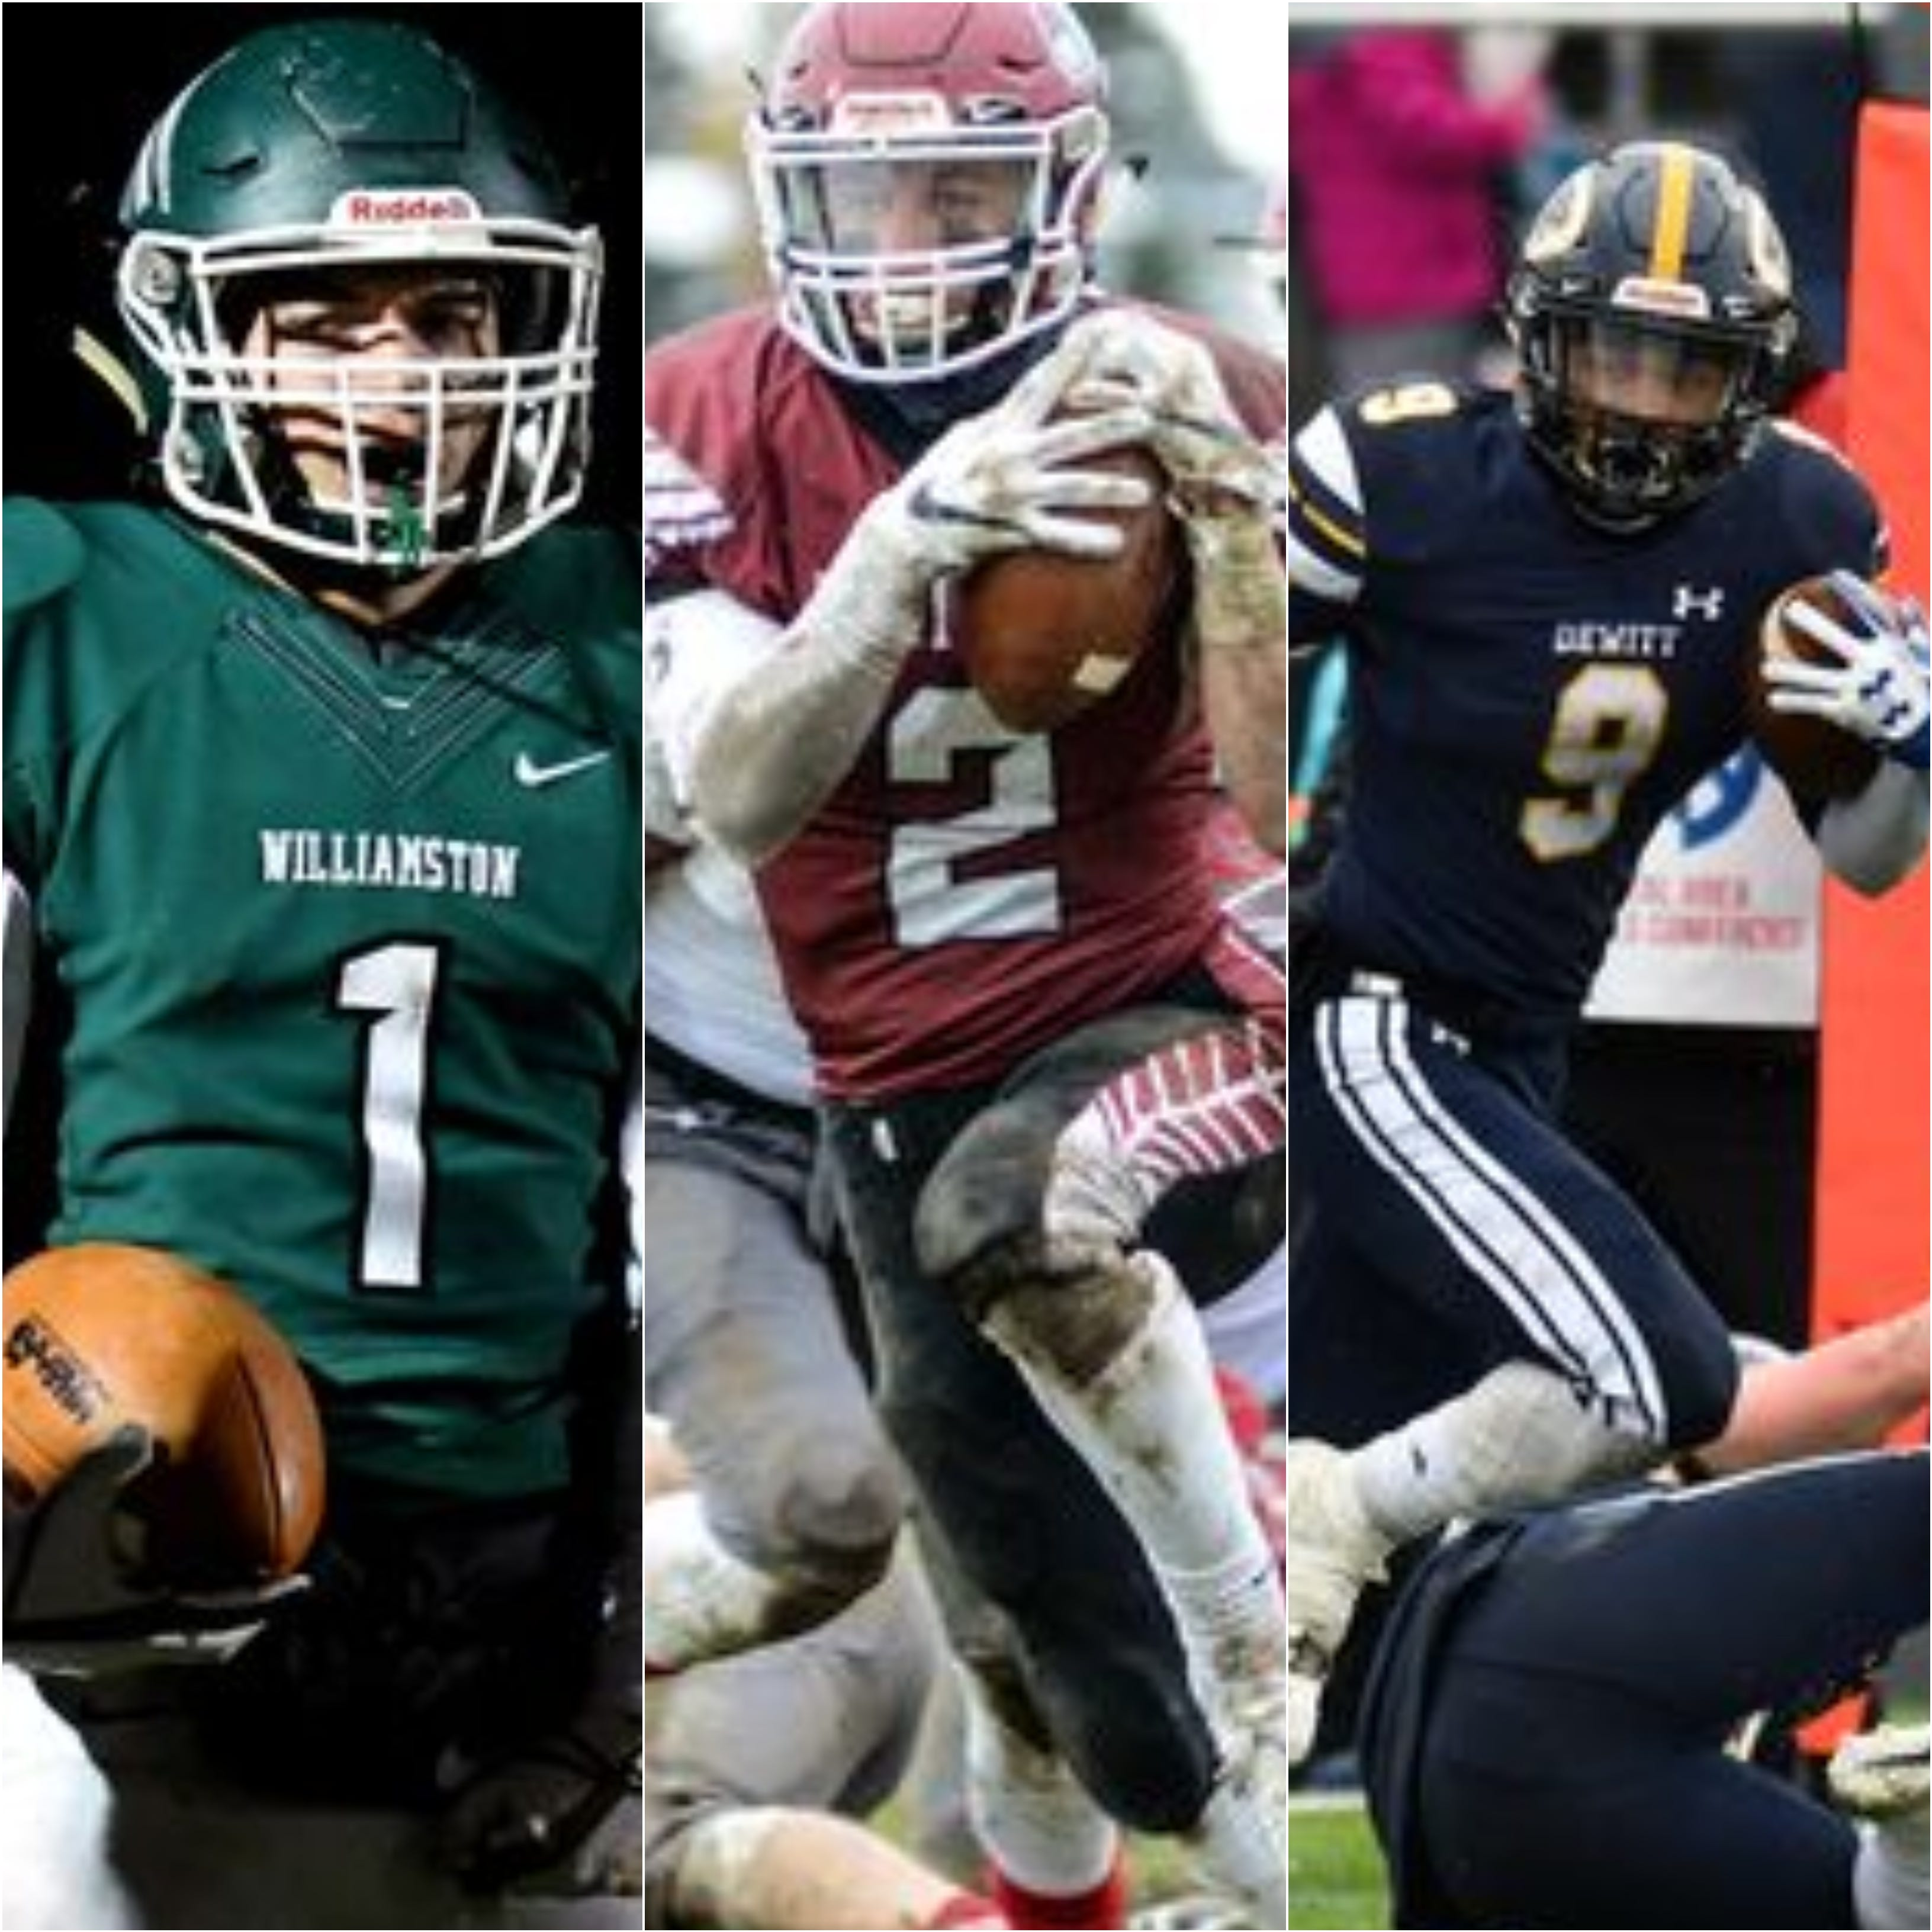 From left, Williamston's Carey Haney, Portland's Jacob Veale and DeWitt's Thaddeus Anwar are pictured during games last weekend. DeWitt, Portland and Williamston are representing the CAAC in state semifinals this weekend.